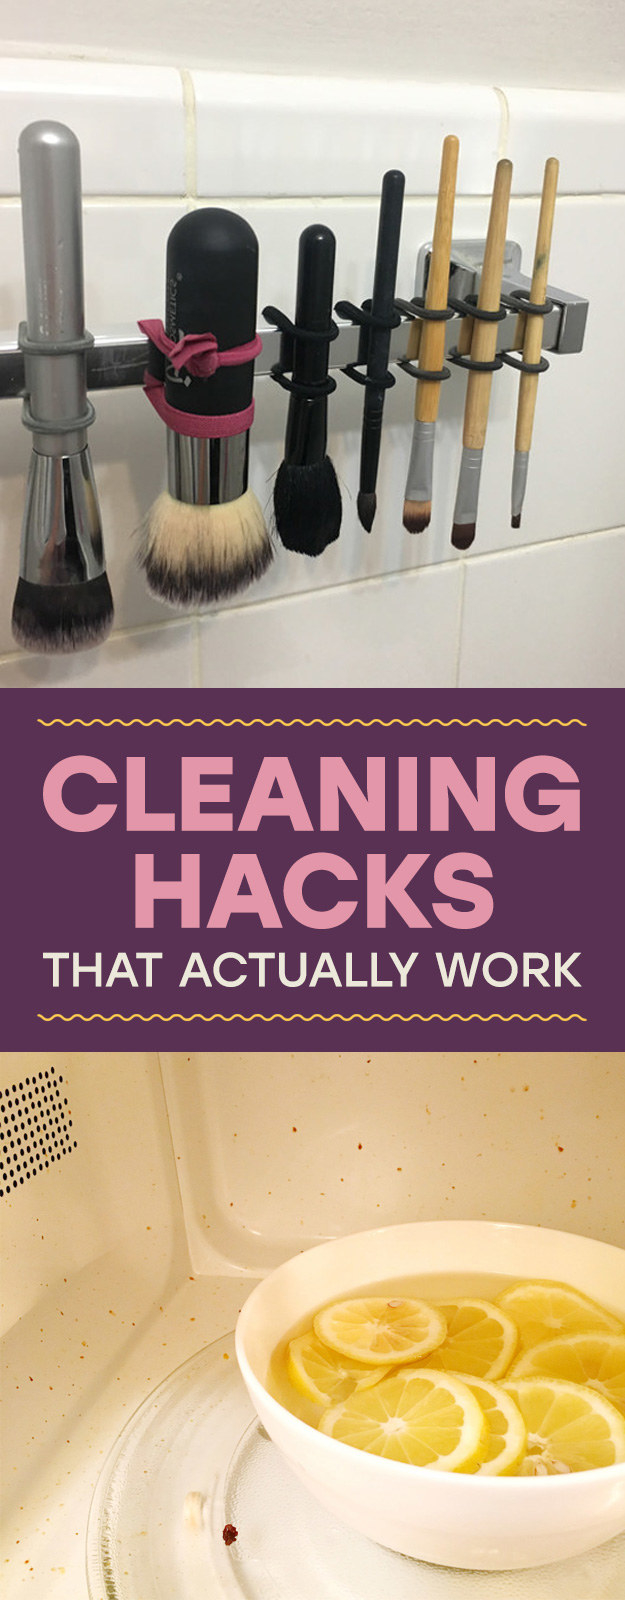 People Share 10Cleaning Hacks That Really Work, and WeCan't Thank Them Enough